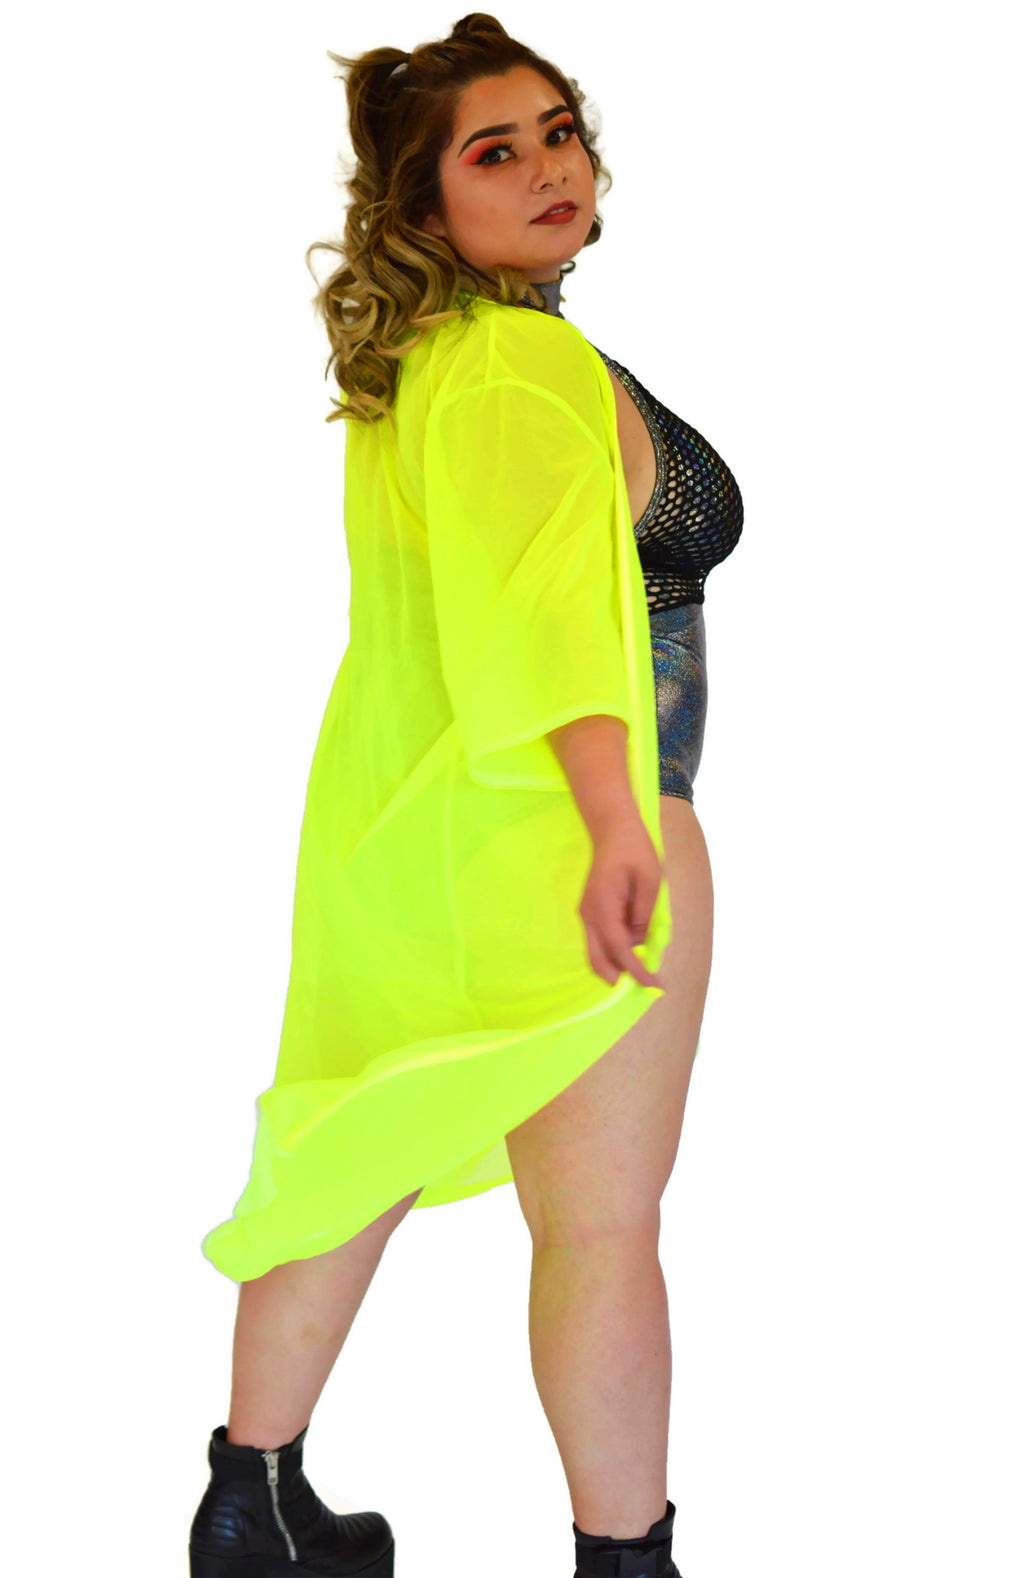 Inferno Cover Up - Mesh Neon Yellow - Rolita Couture